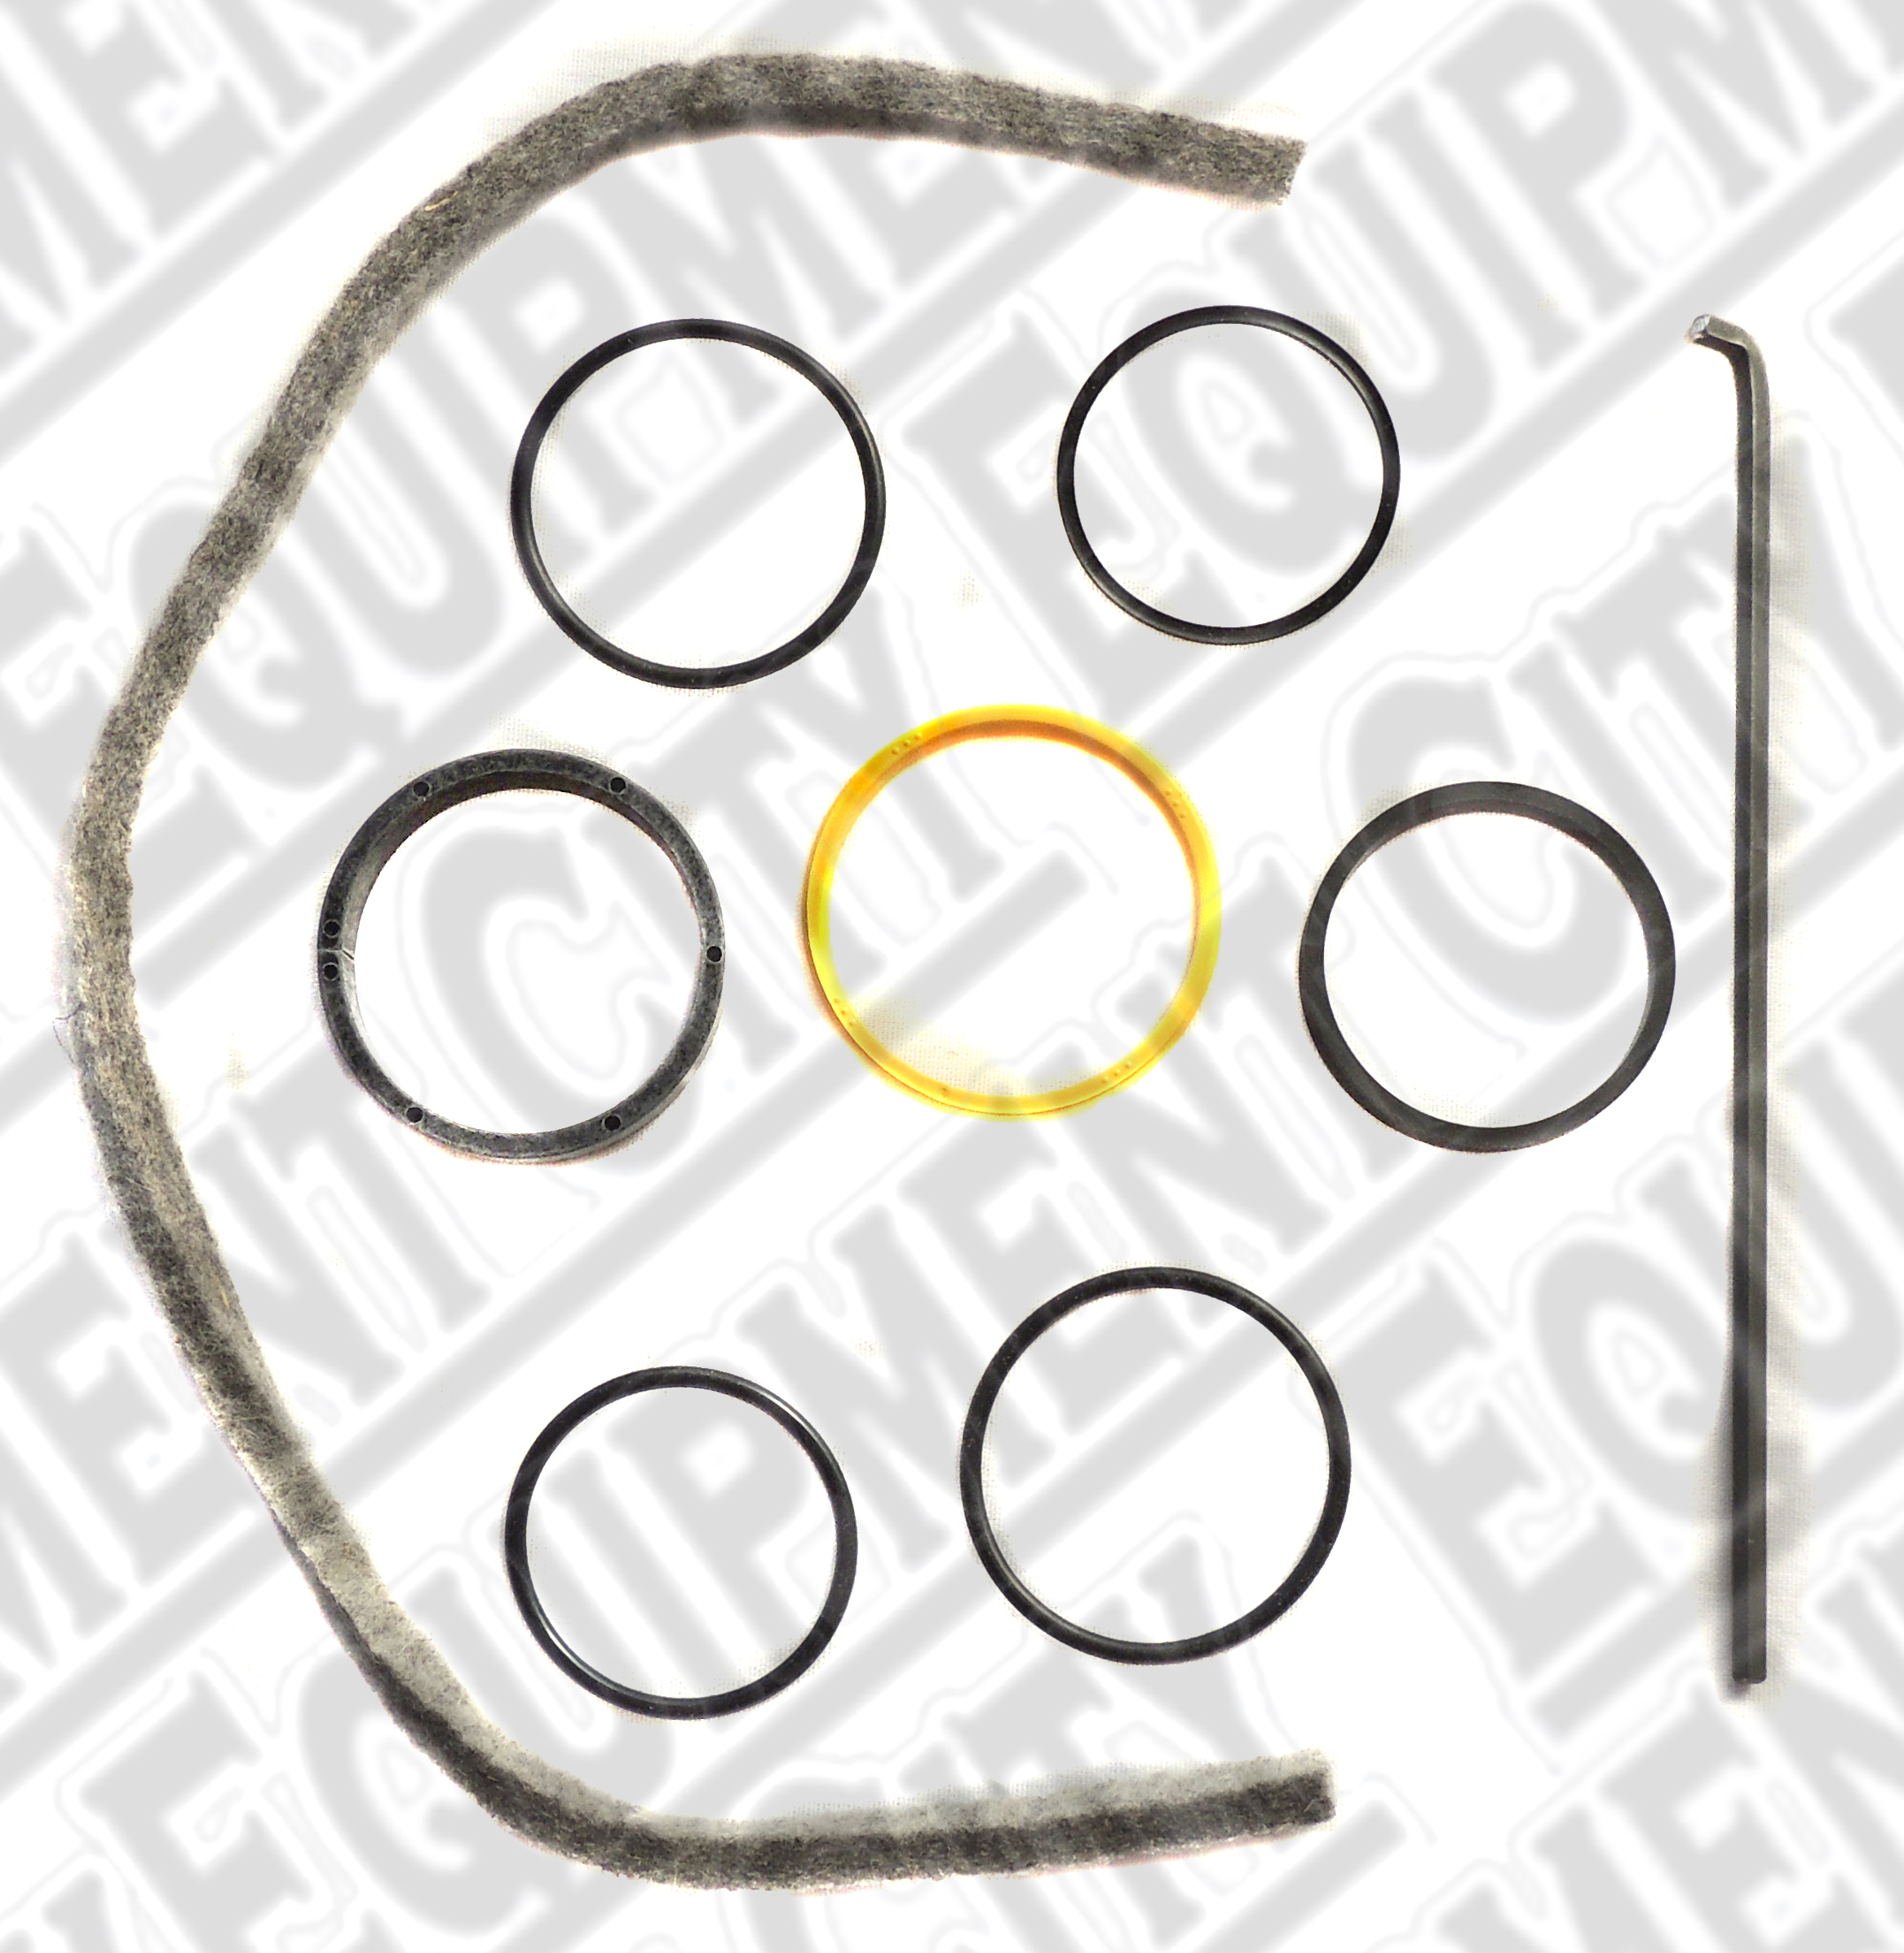 SVI BH-7100-77 Ammco-Ben Pearson Cylinder Seal Kit 82803